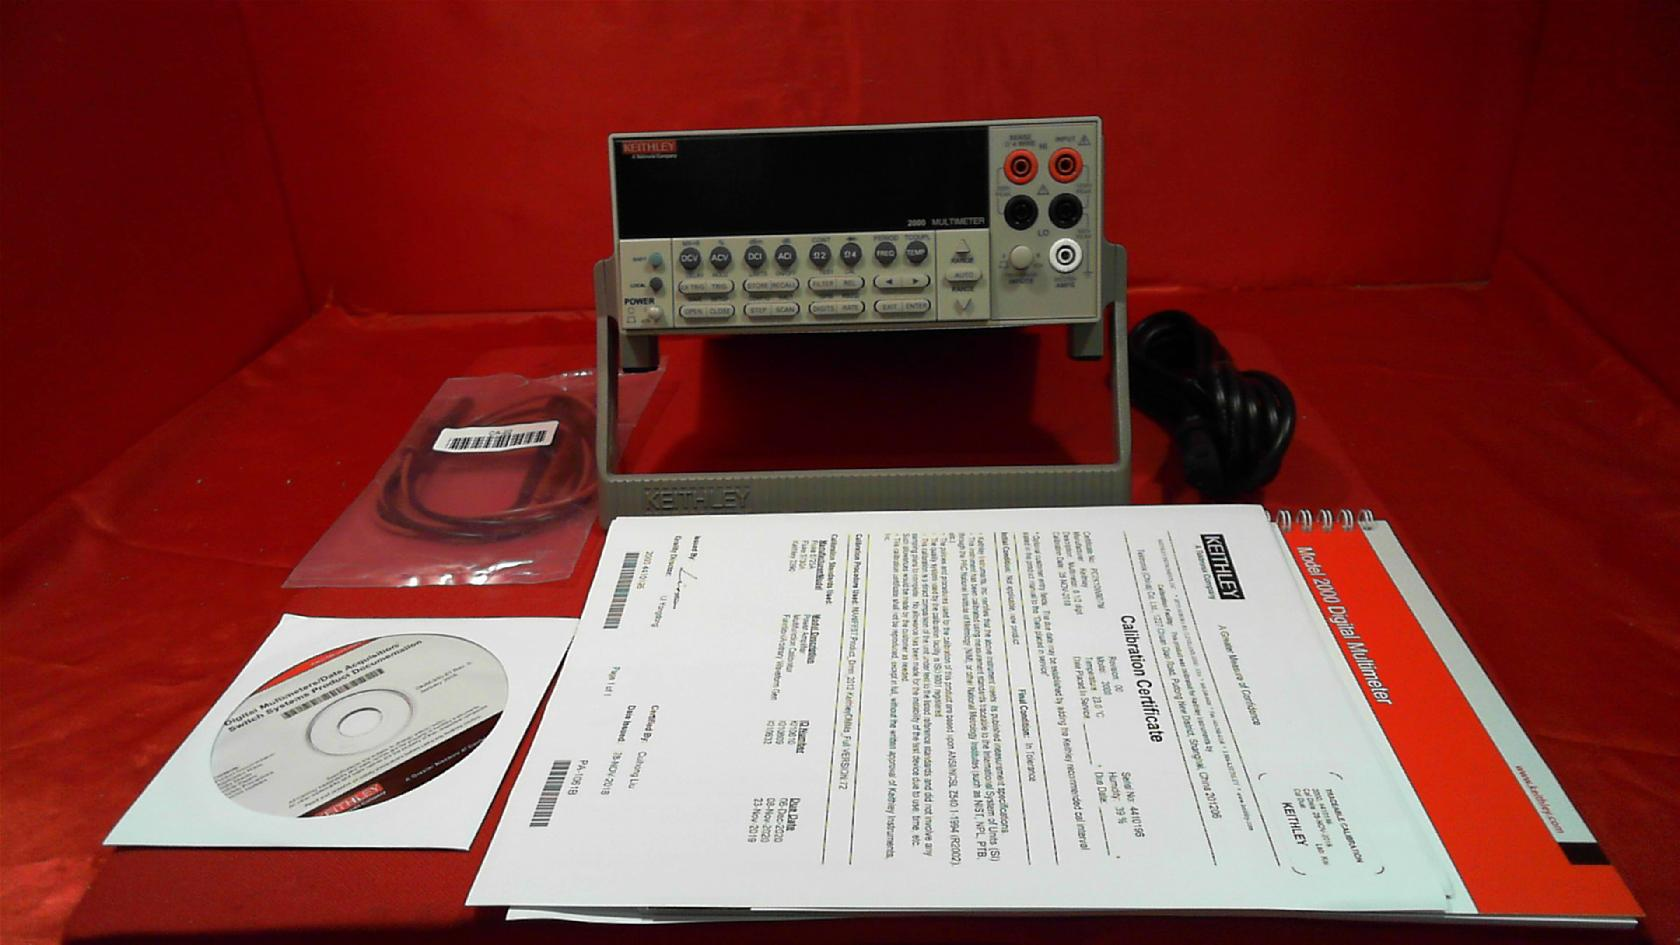 Keithley 2000-NEW image-109009